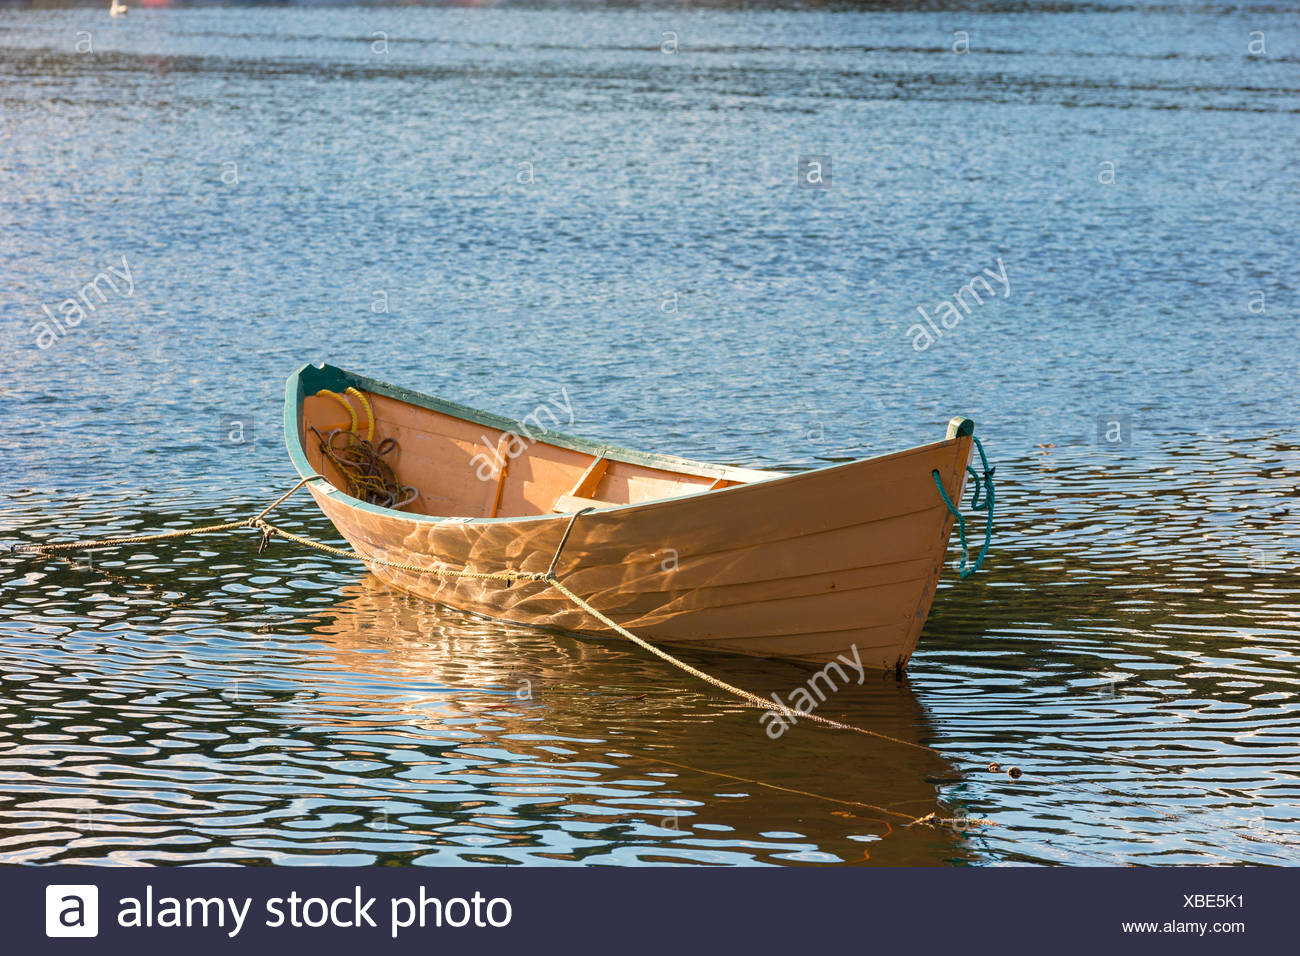 Wooden Boat, Brigus South, Newfoundland, Canada - Stock Image